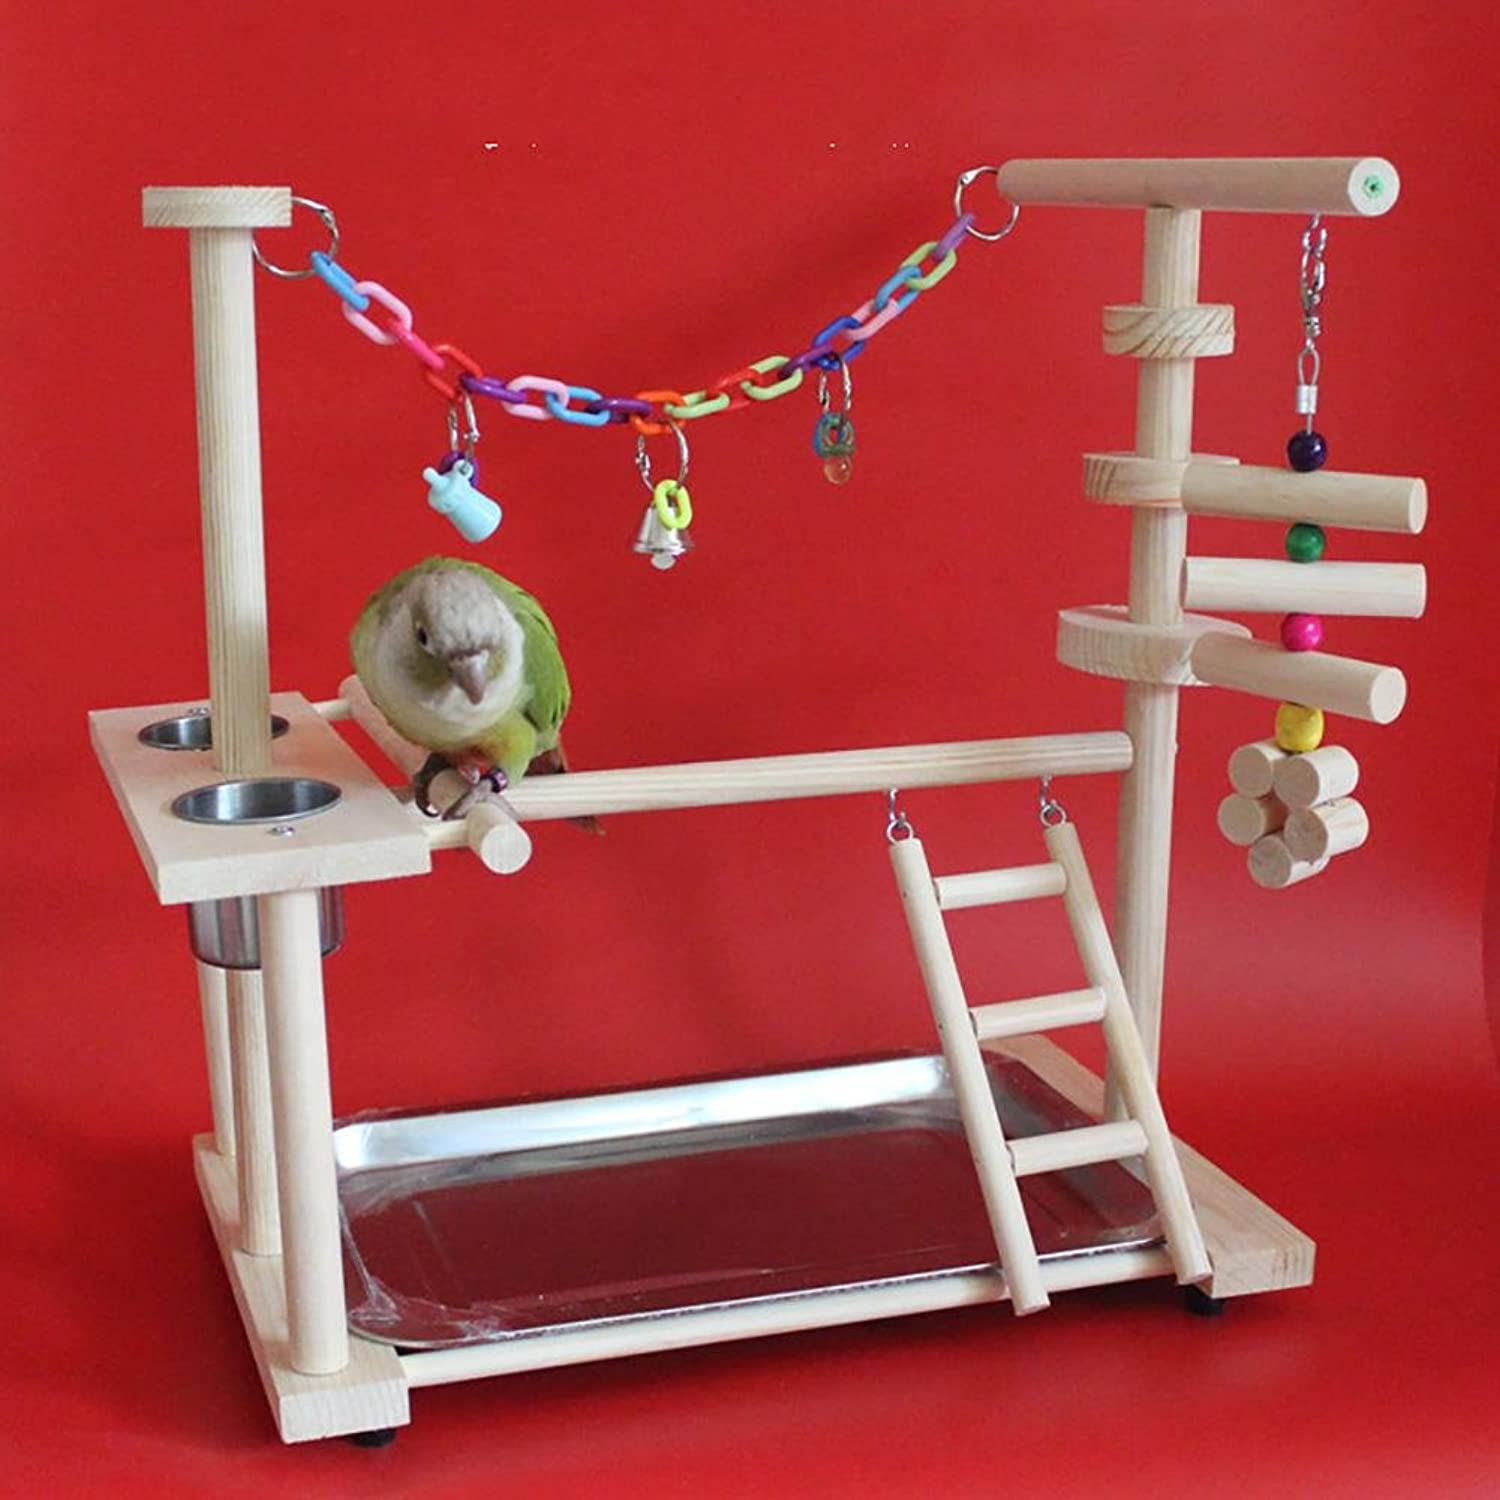 Myyxt Bird Parred Toys Wooden Ladder Swing Stand Up The Stairs